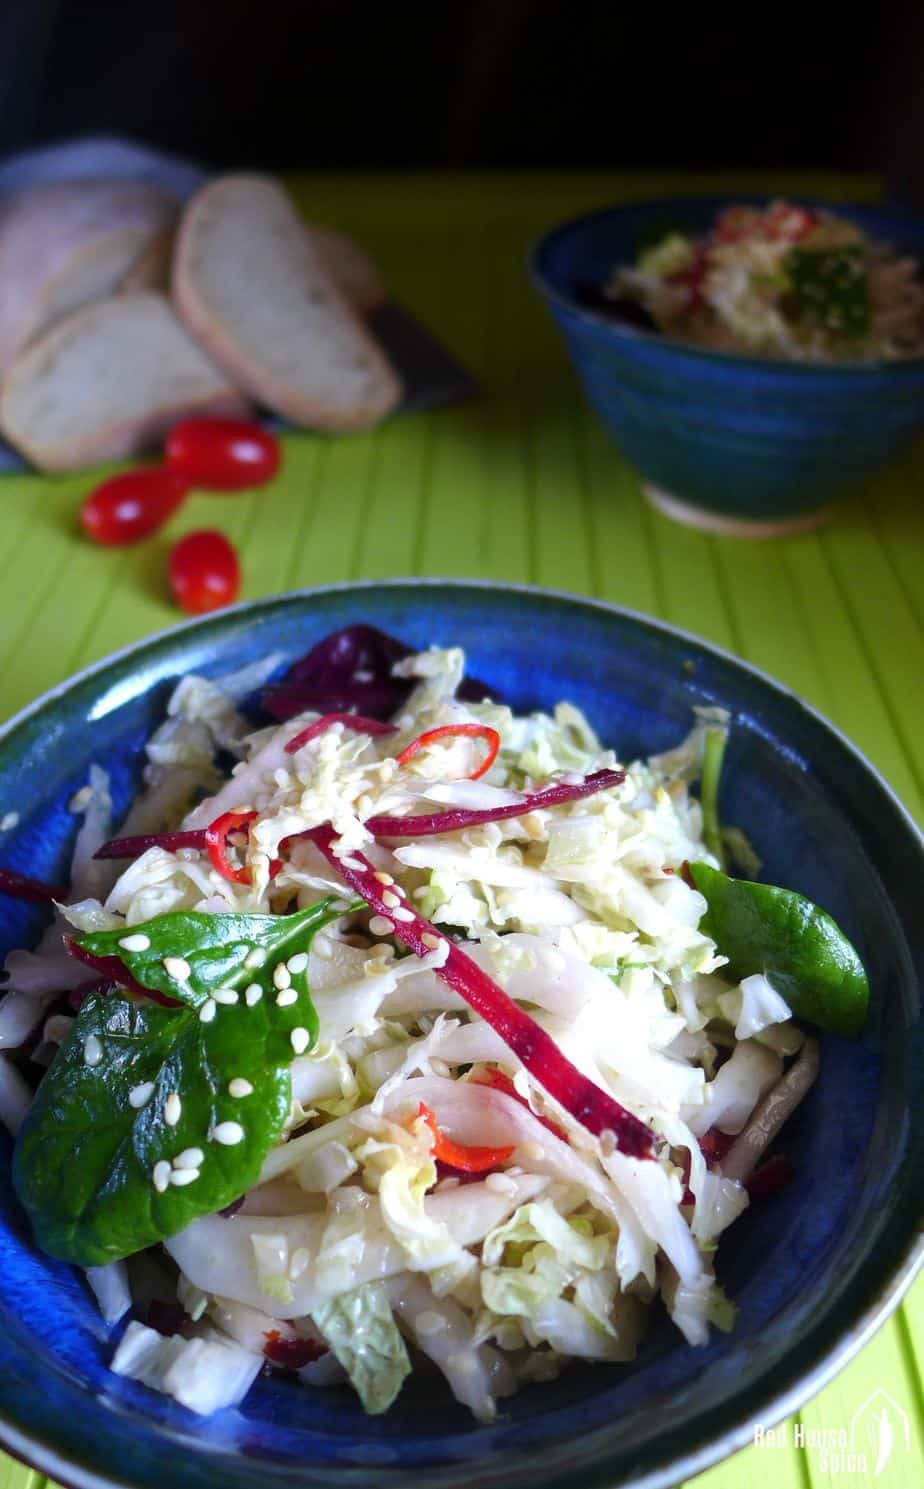 A bowlful of Napa cabbage salad with hot oil dressing